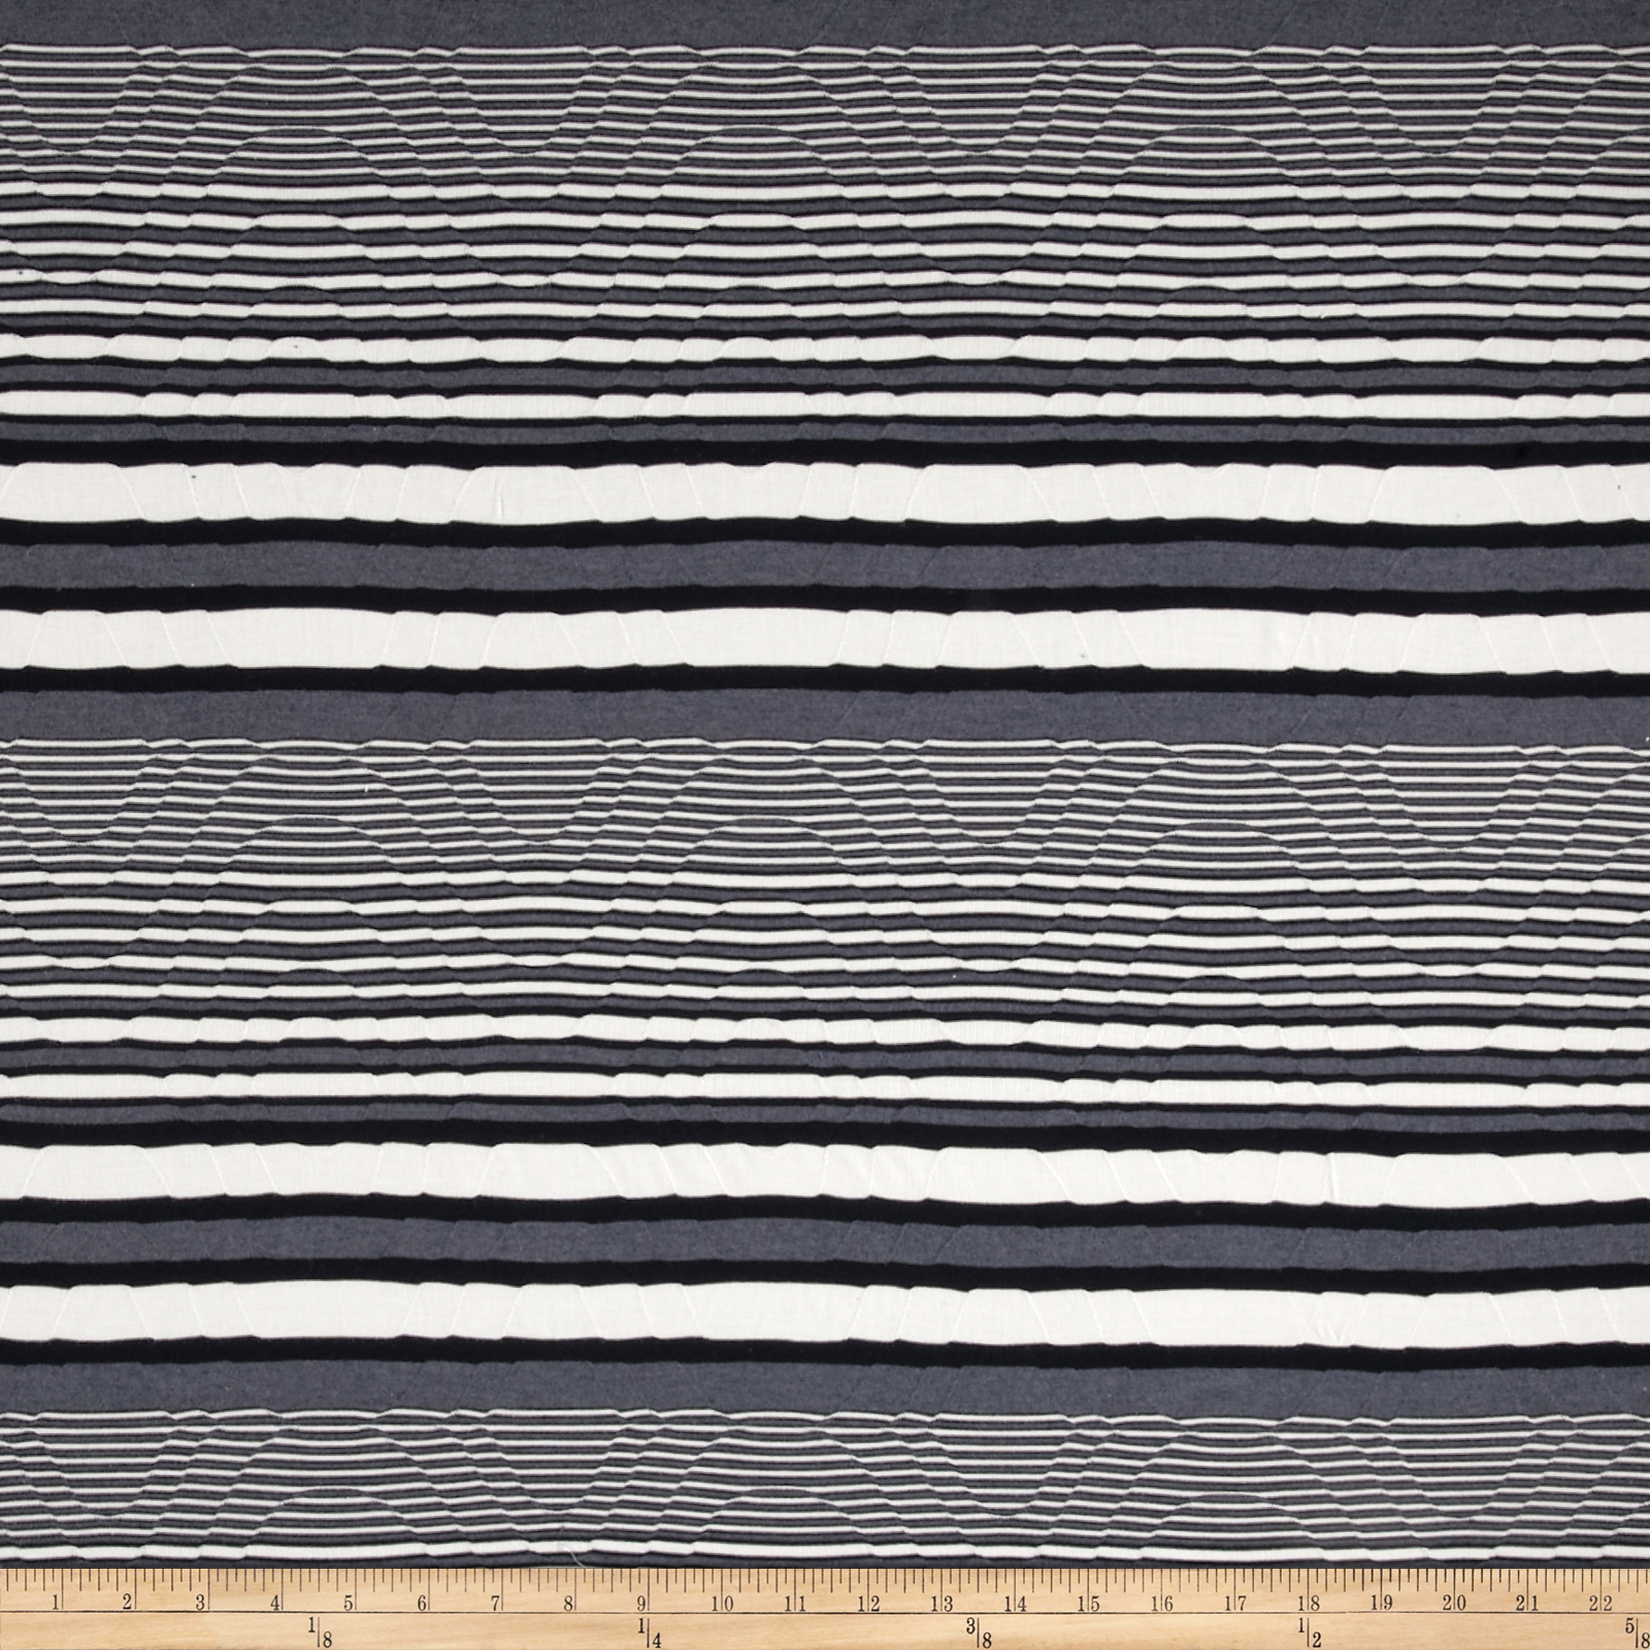 Essence Knit Stripe White/Black Fabric